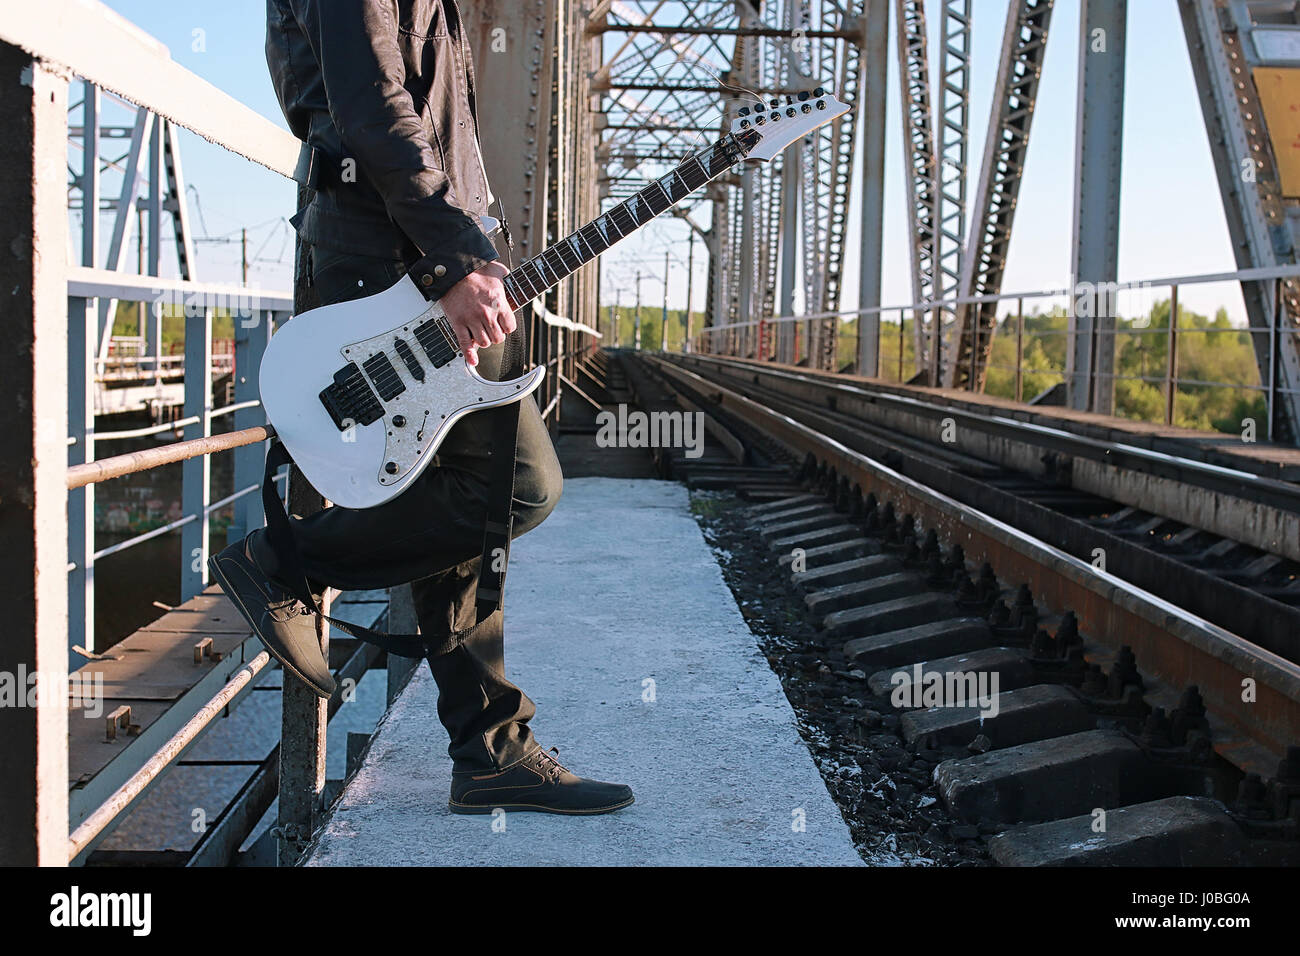 Man with an electric guitar in the industrial landscape outdoors - Stock Image